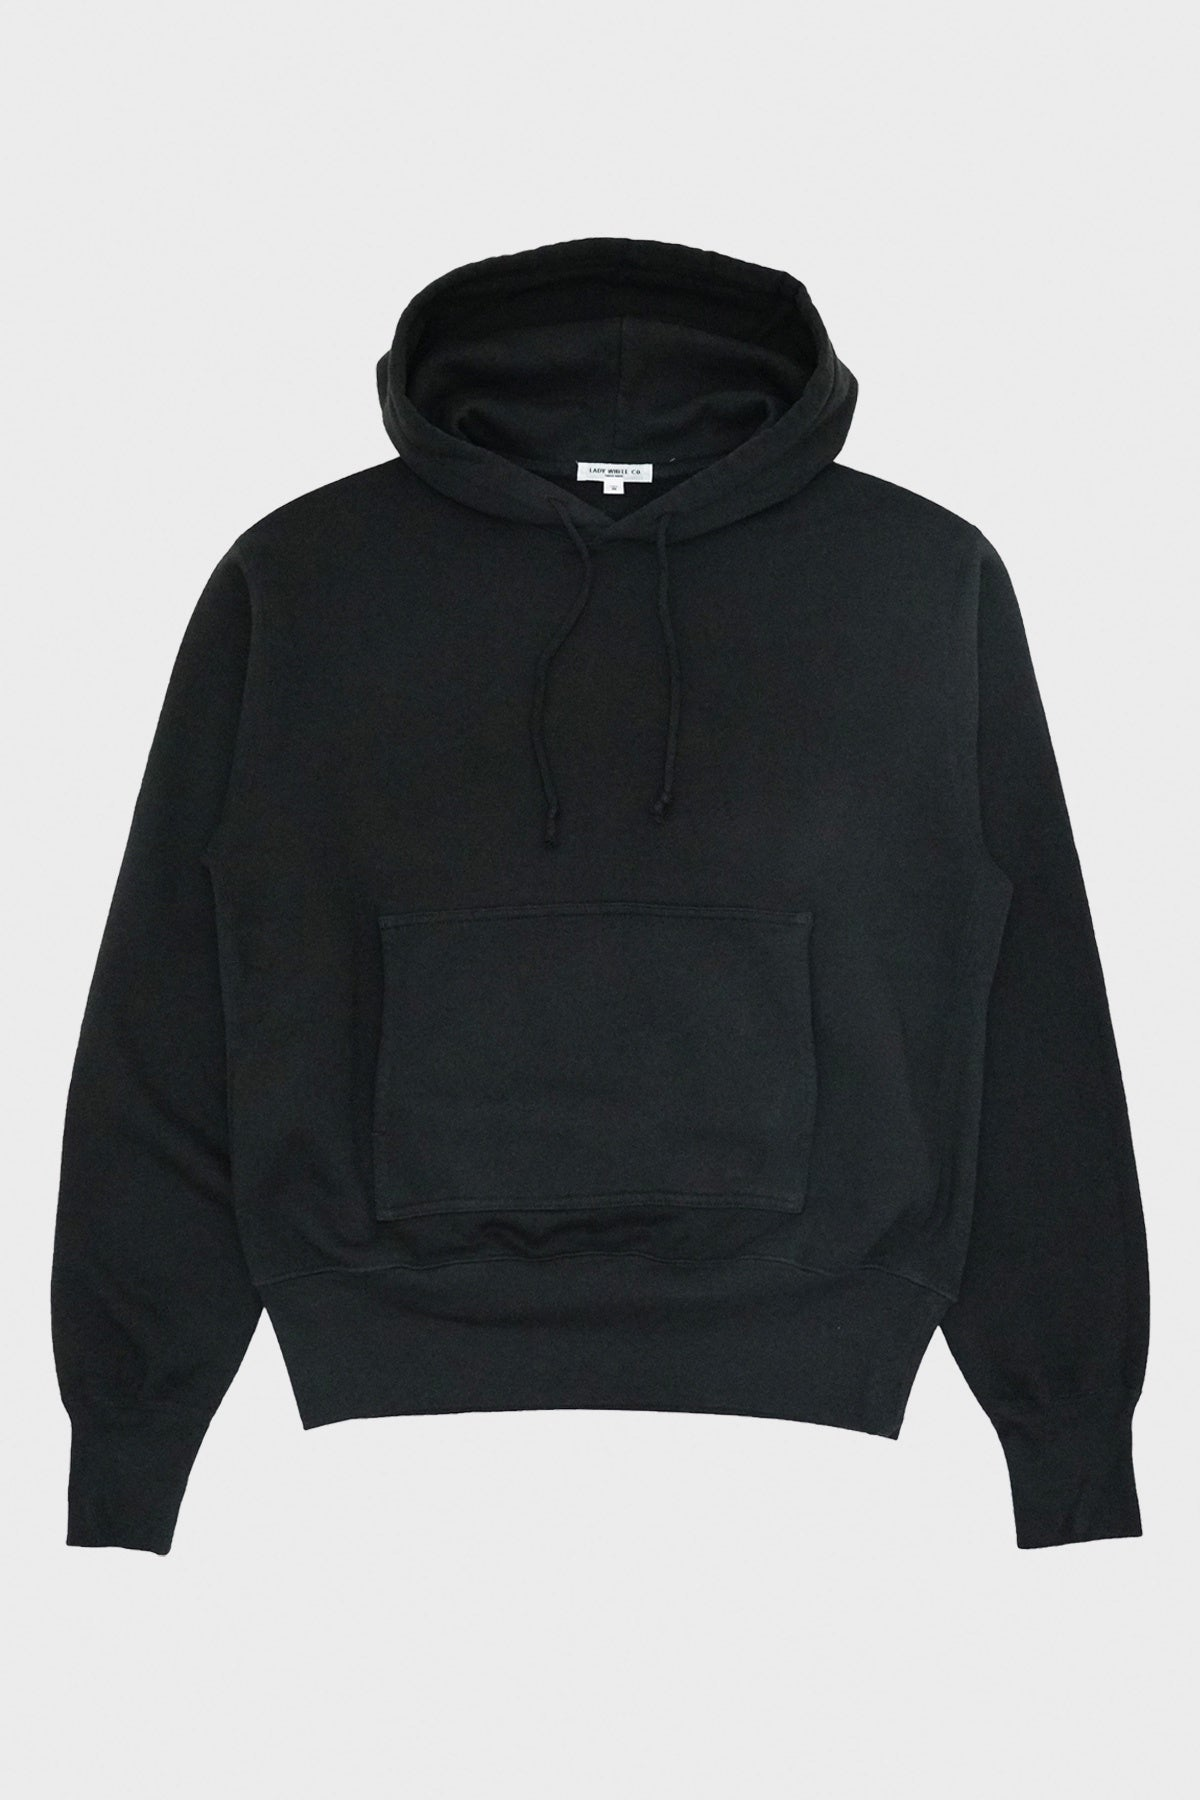 Lady White Co. - Hoodie - Faded Black - Canoe Club